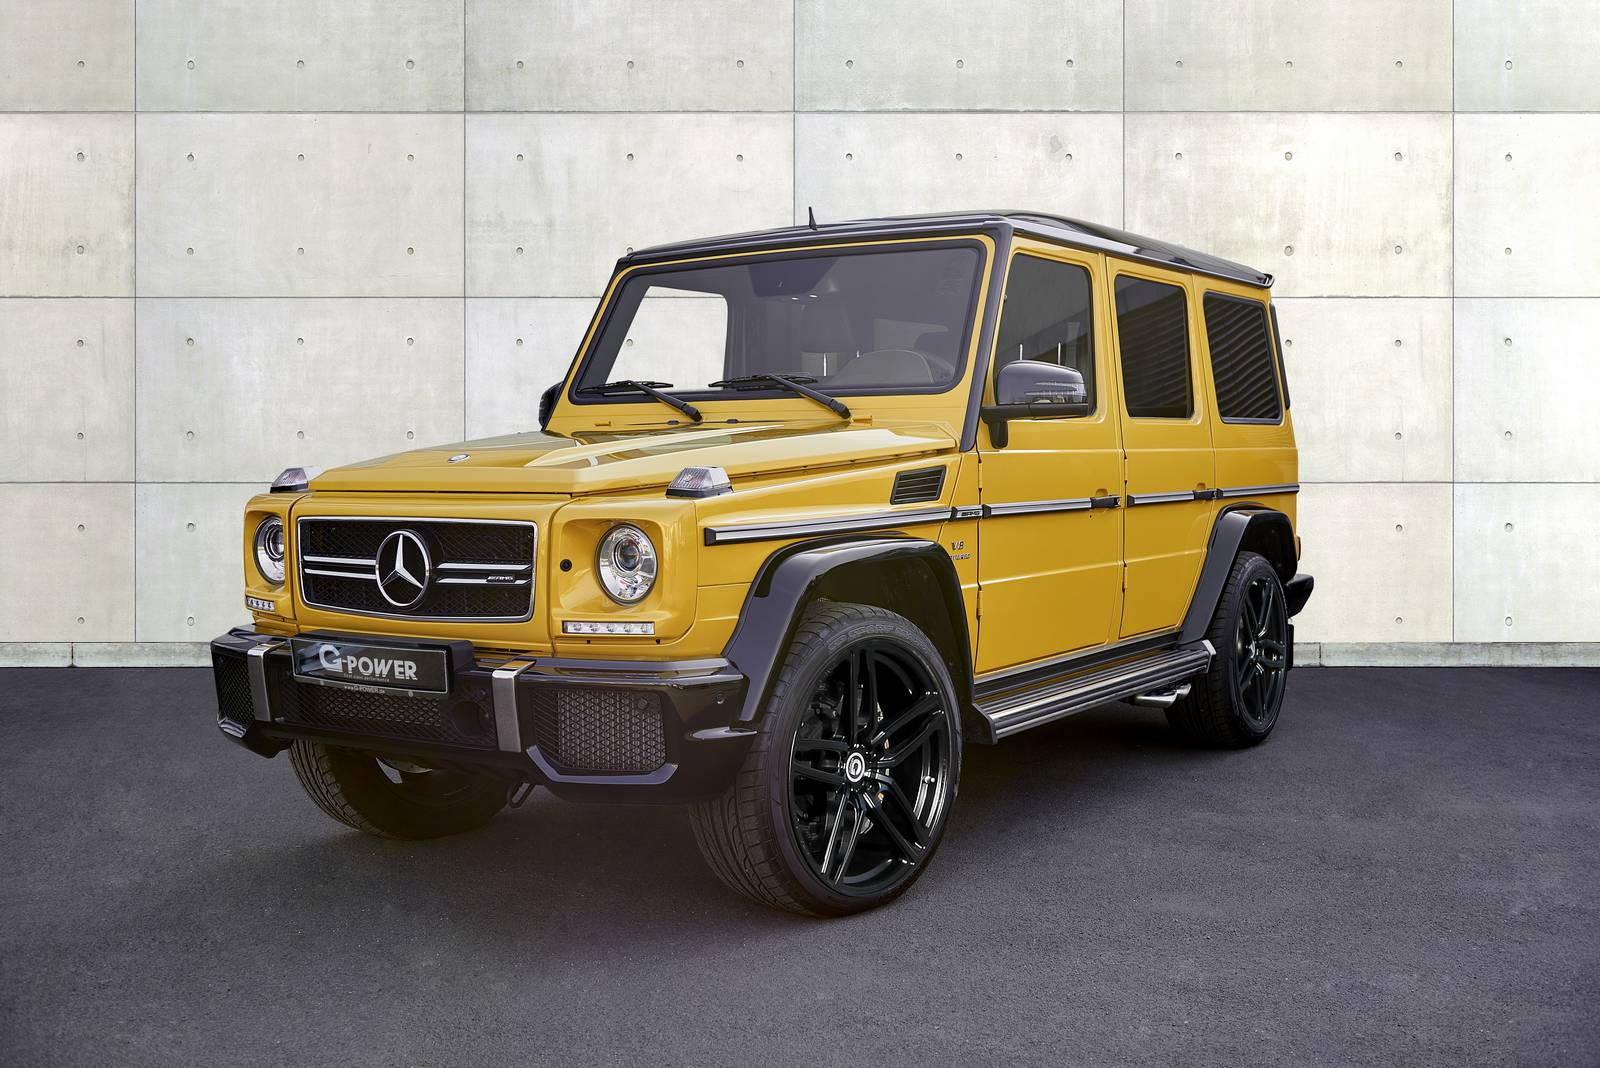 Official g power mercedes benz g63 amg with 645hp gtspirit for Mercedes benz g 63